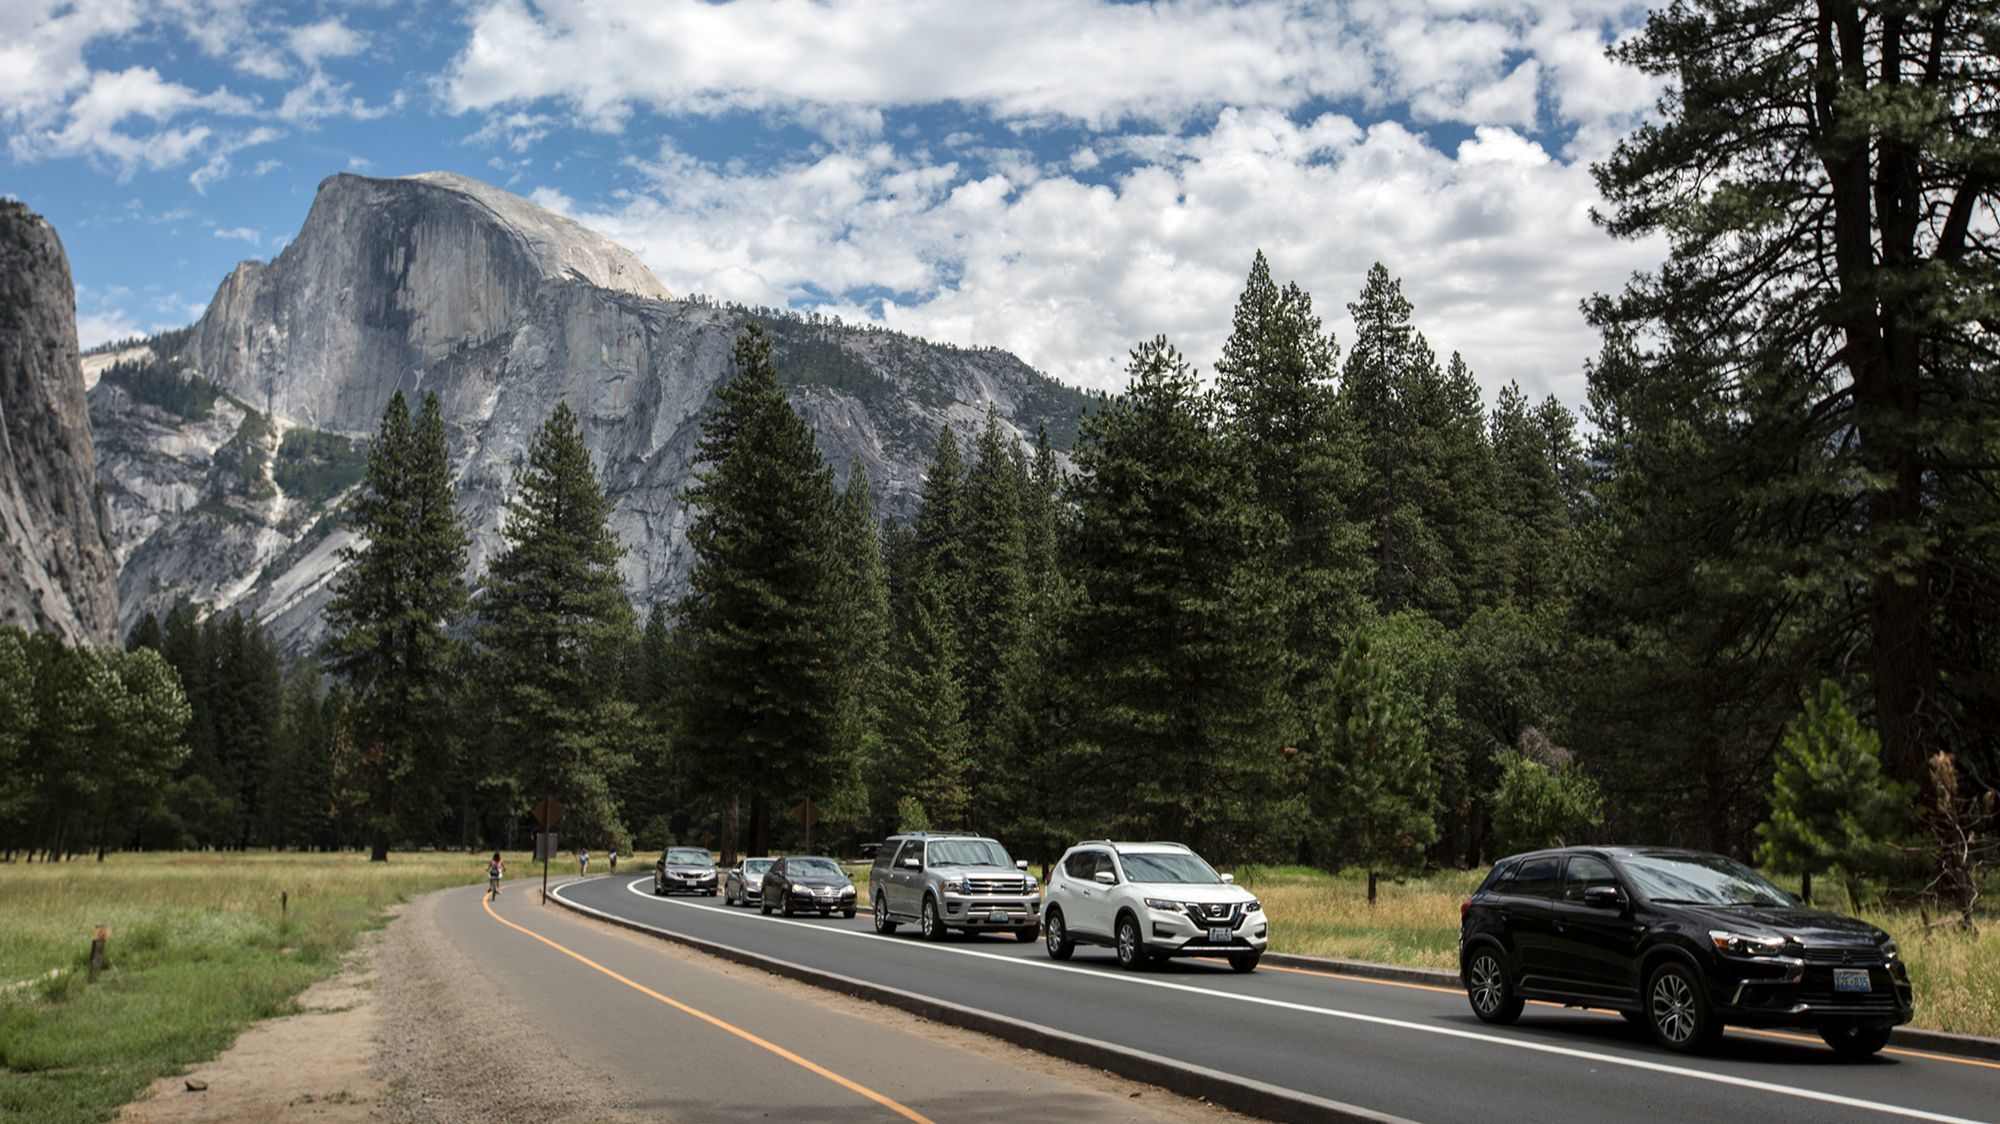 Traffic backs up along the valley floor while a bus lane remains largely open at Yosemite National Park.